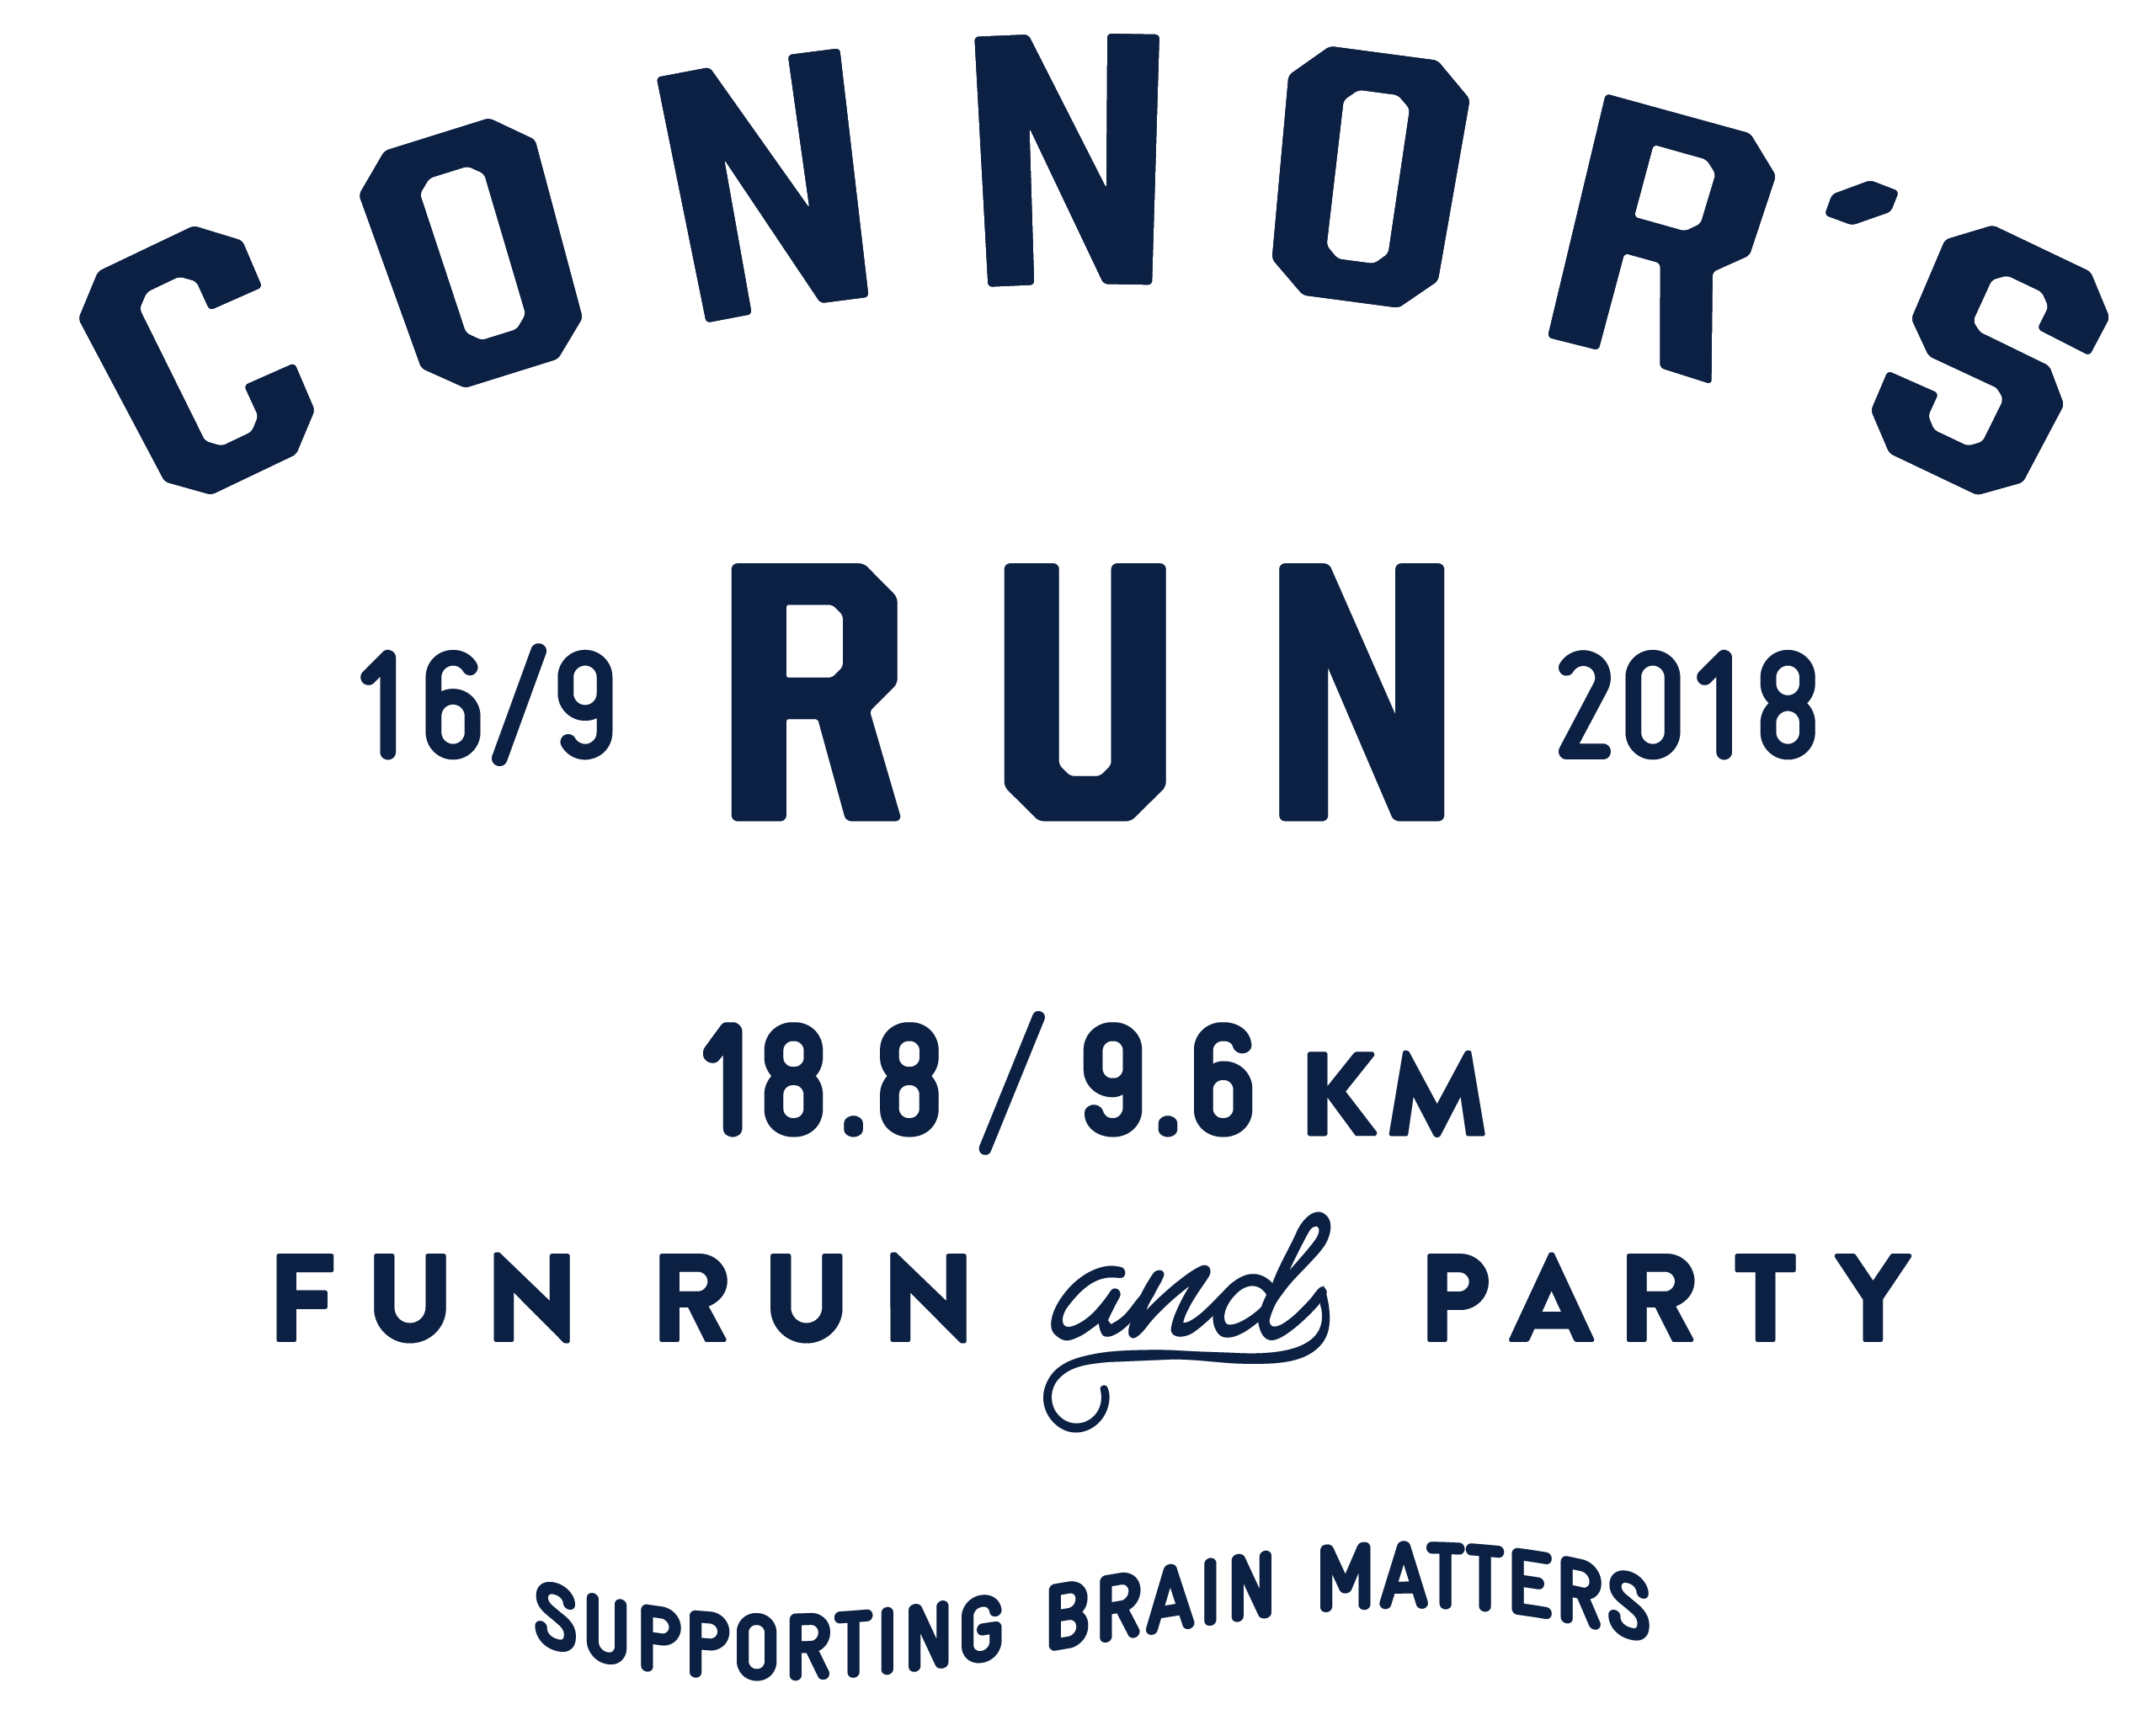 CONNORS RUN